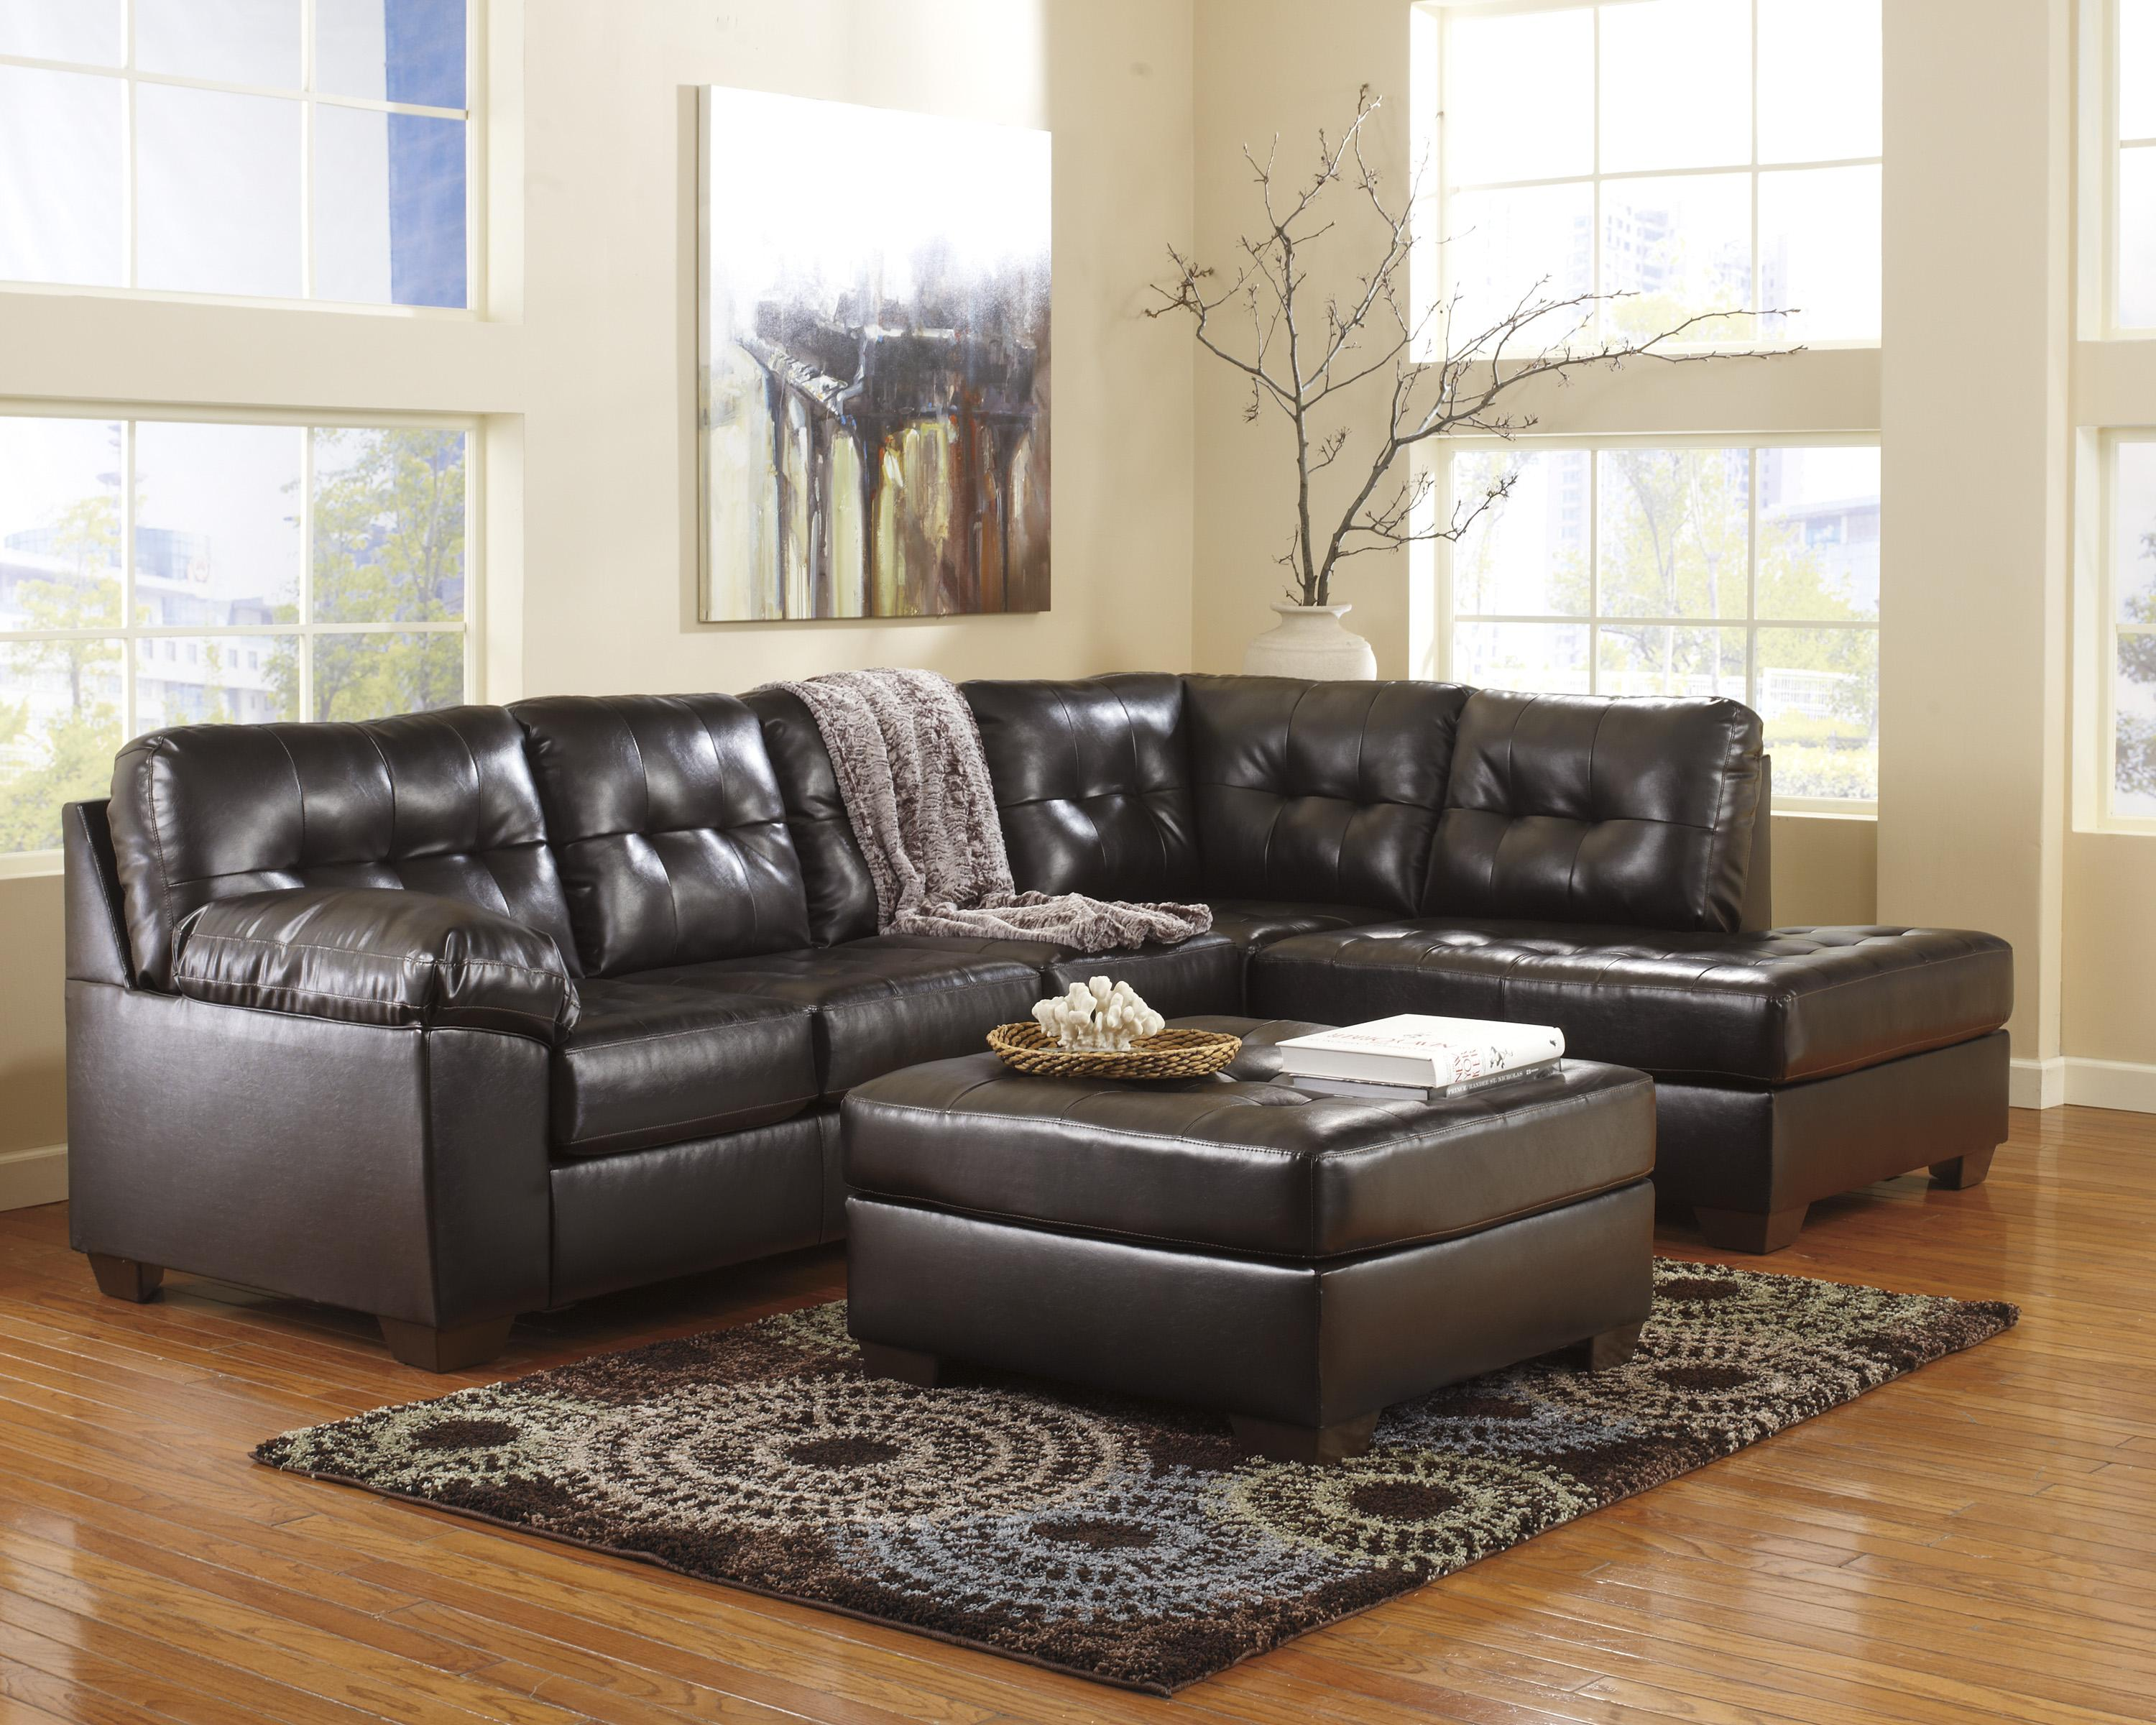 Alliston DuraBlend® - Chocolate Stationary Living Room Group by Signature Design by Ashley at Value City Furniture